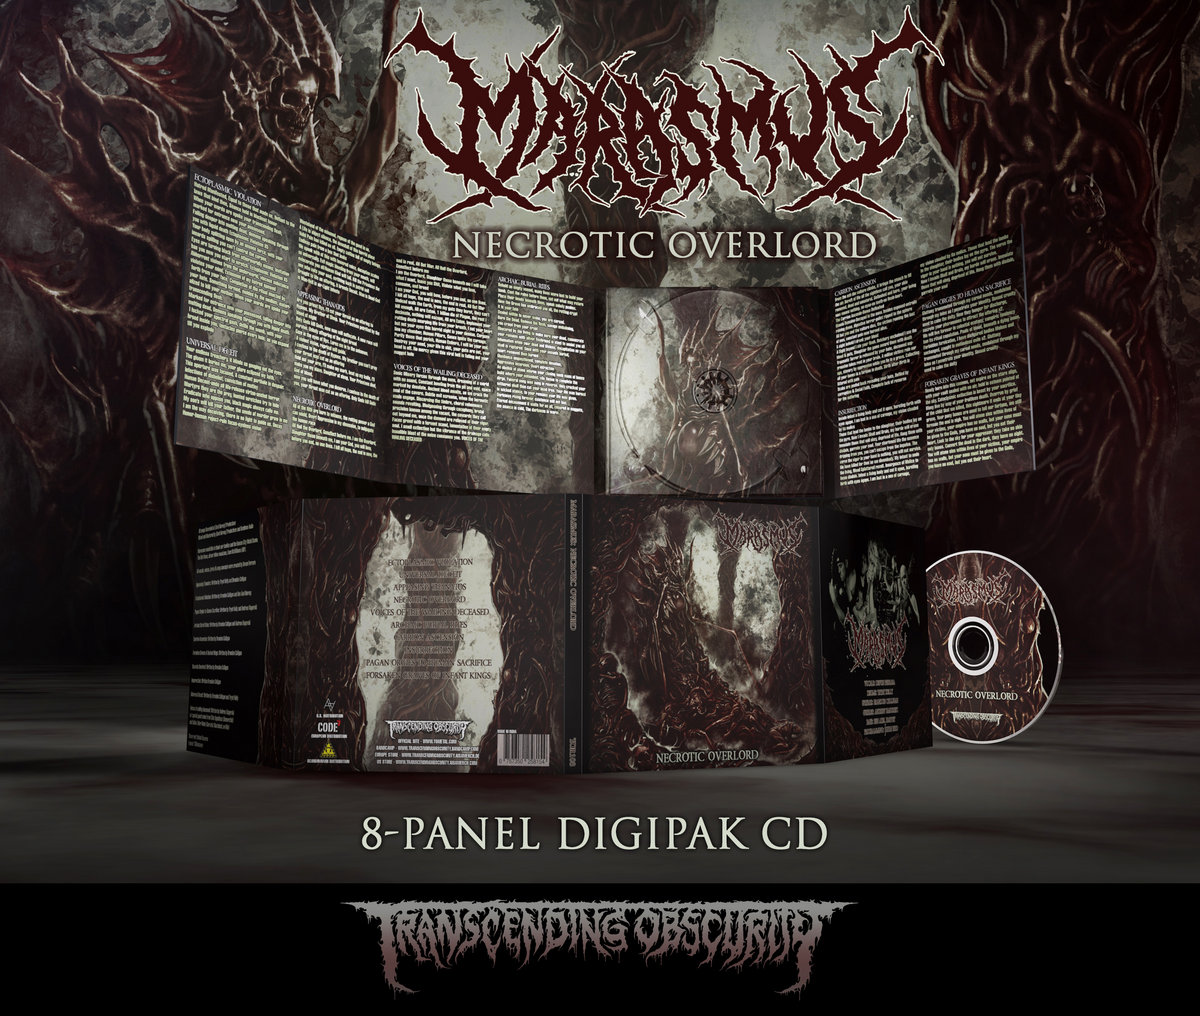 MARASMUS - Necrotic Overlord 8-Panel Digipak CD with Metallic Effect and UV Embossing